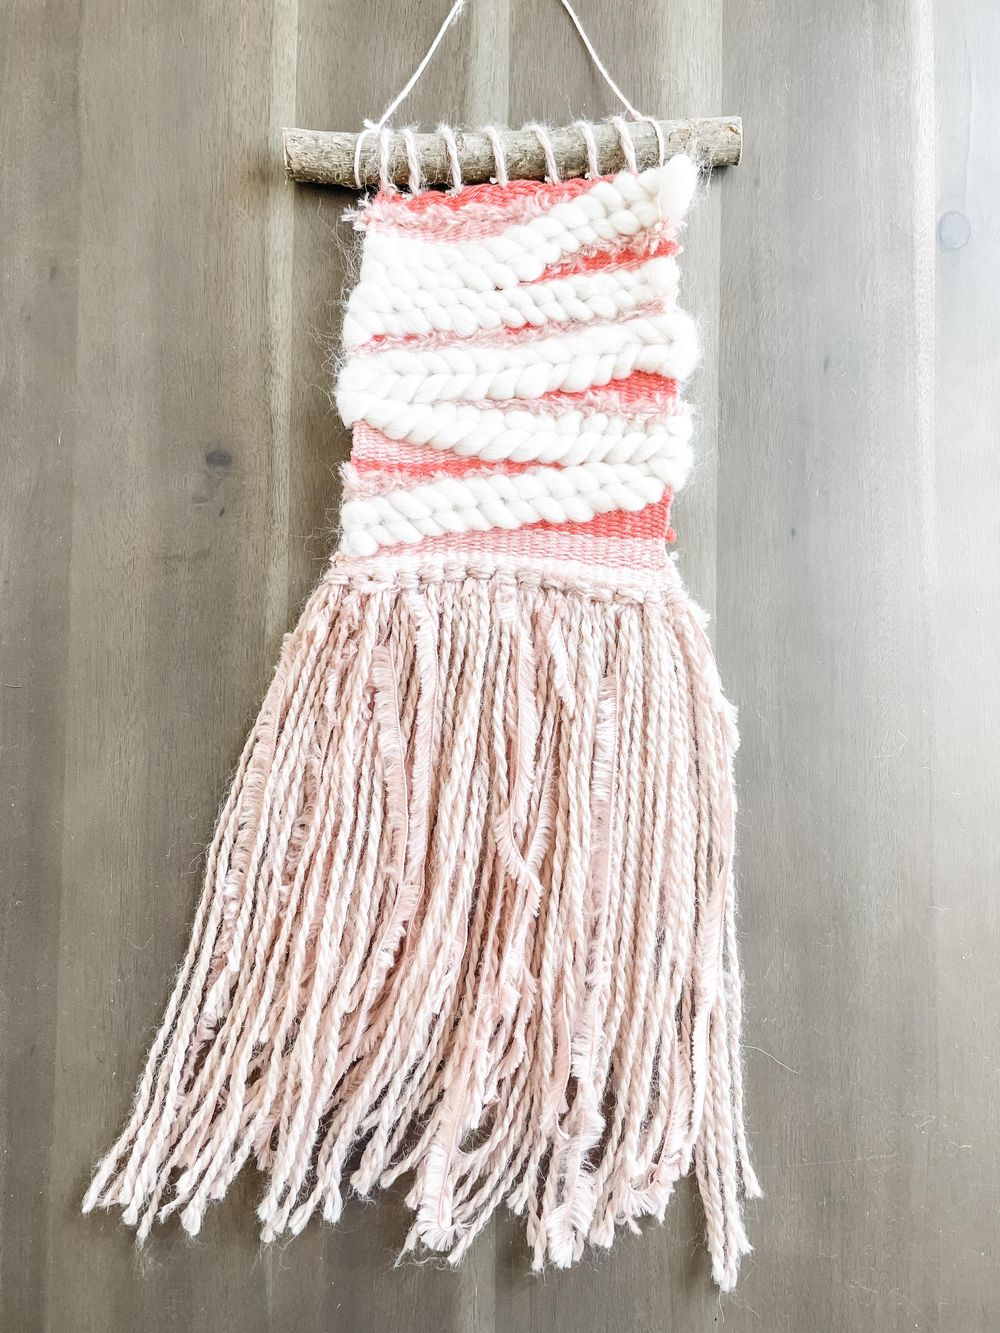 Coral Woven Wall Hanging - image 1 - student project